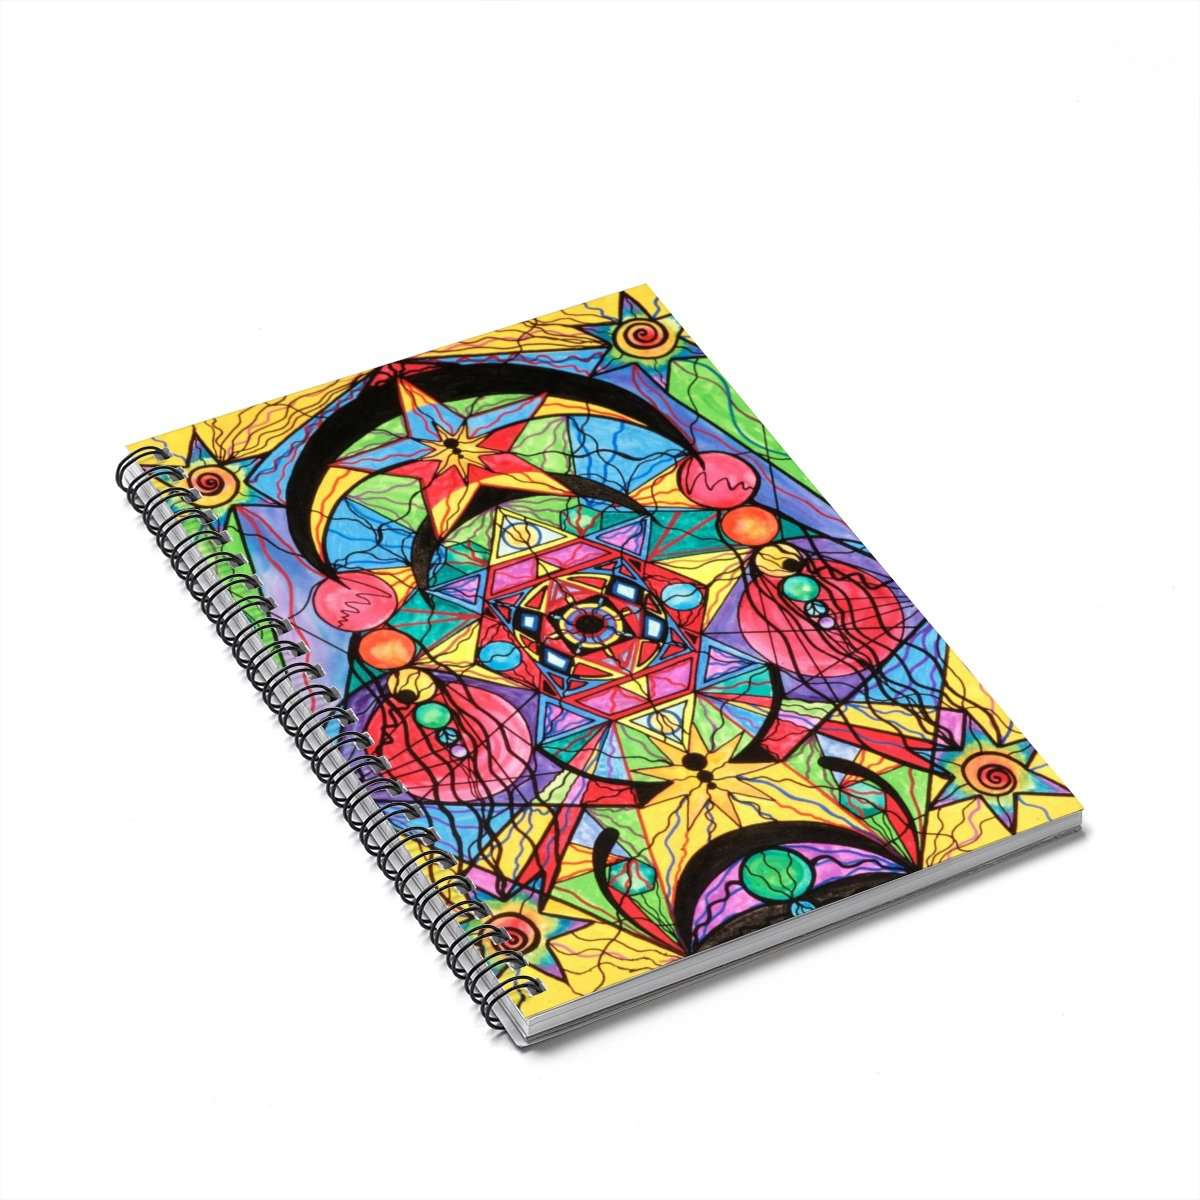 Produkt Arcturian Ascension Grid-Spiral Notebook